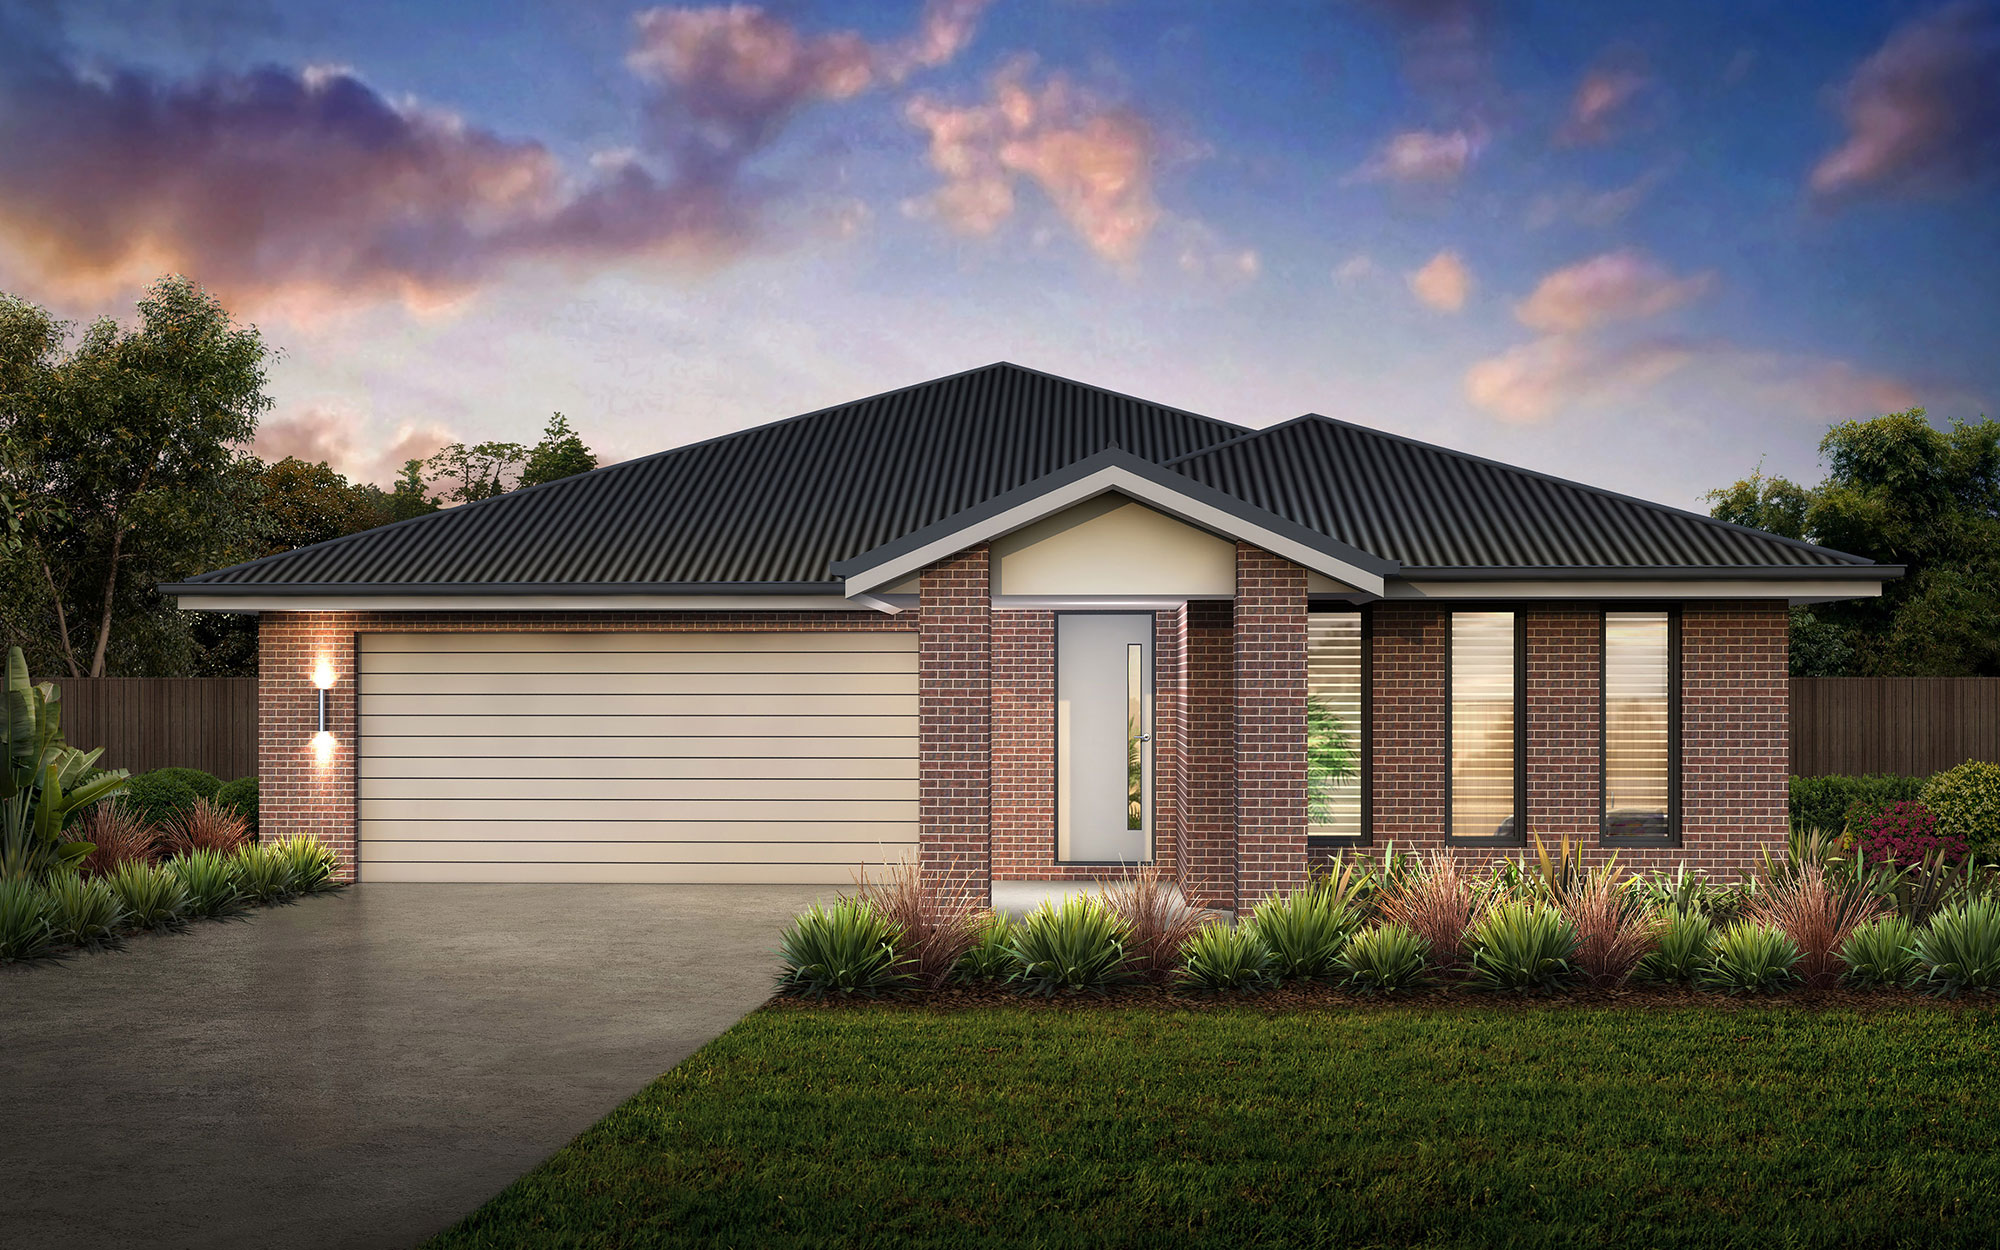 home design essentials arlington mkii 34 southern vale homes 12118